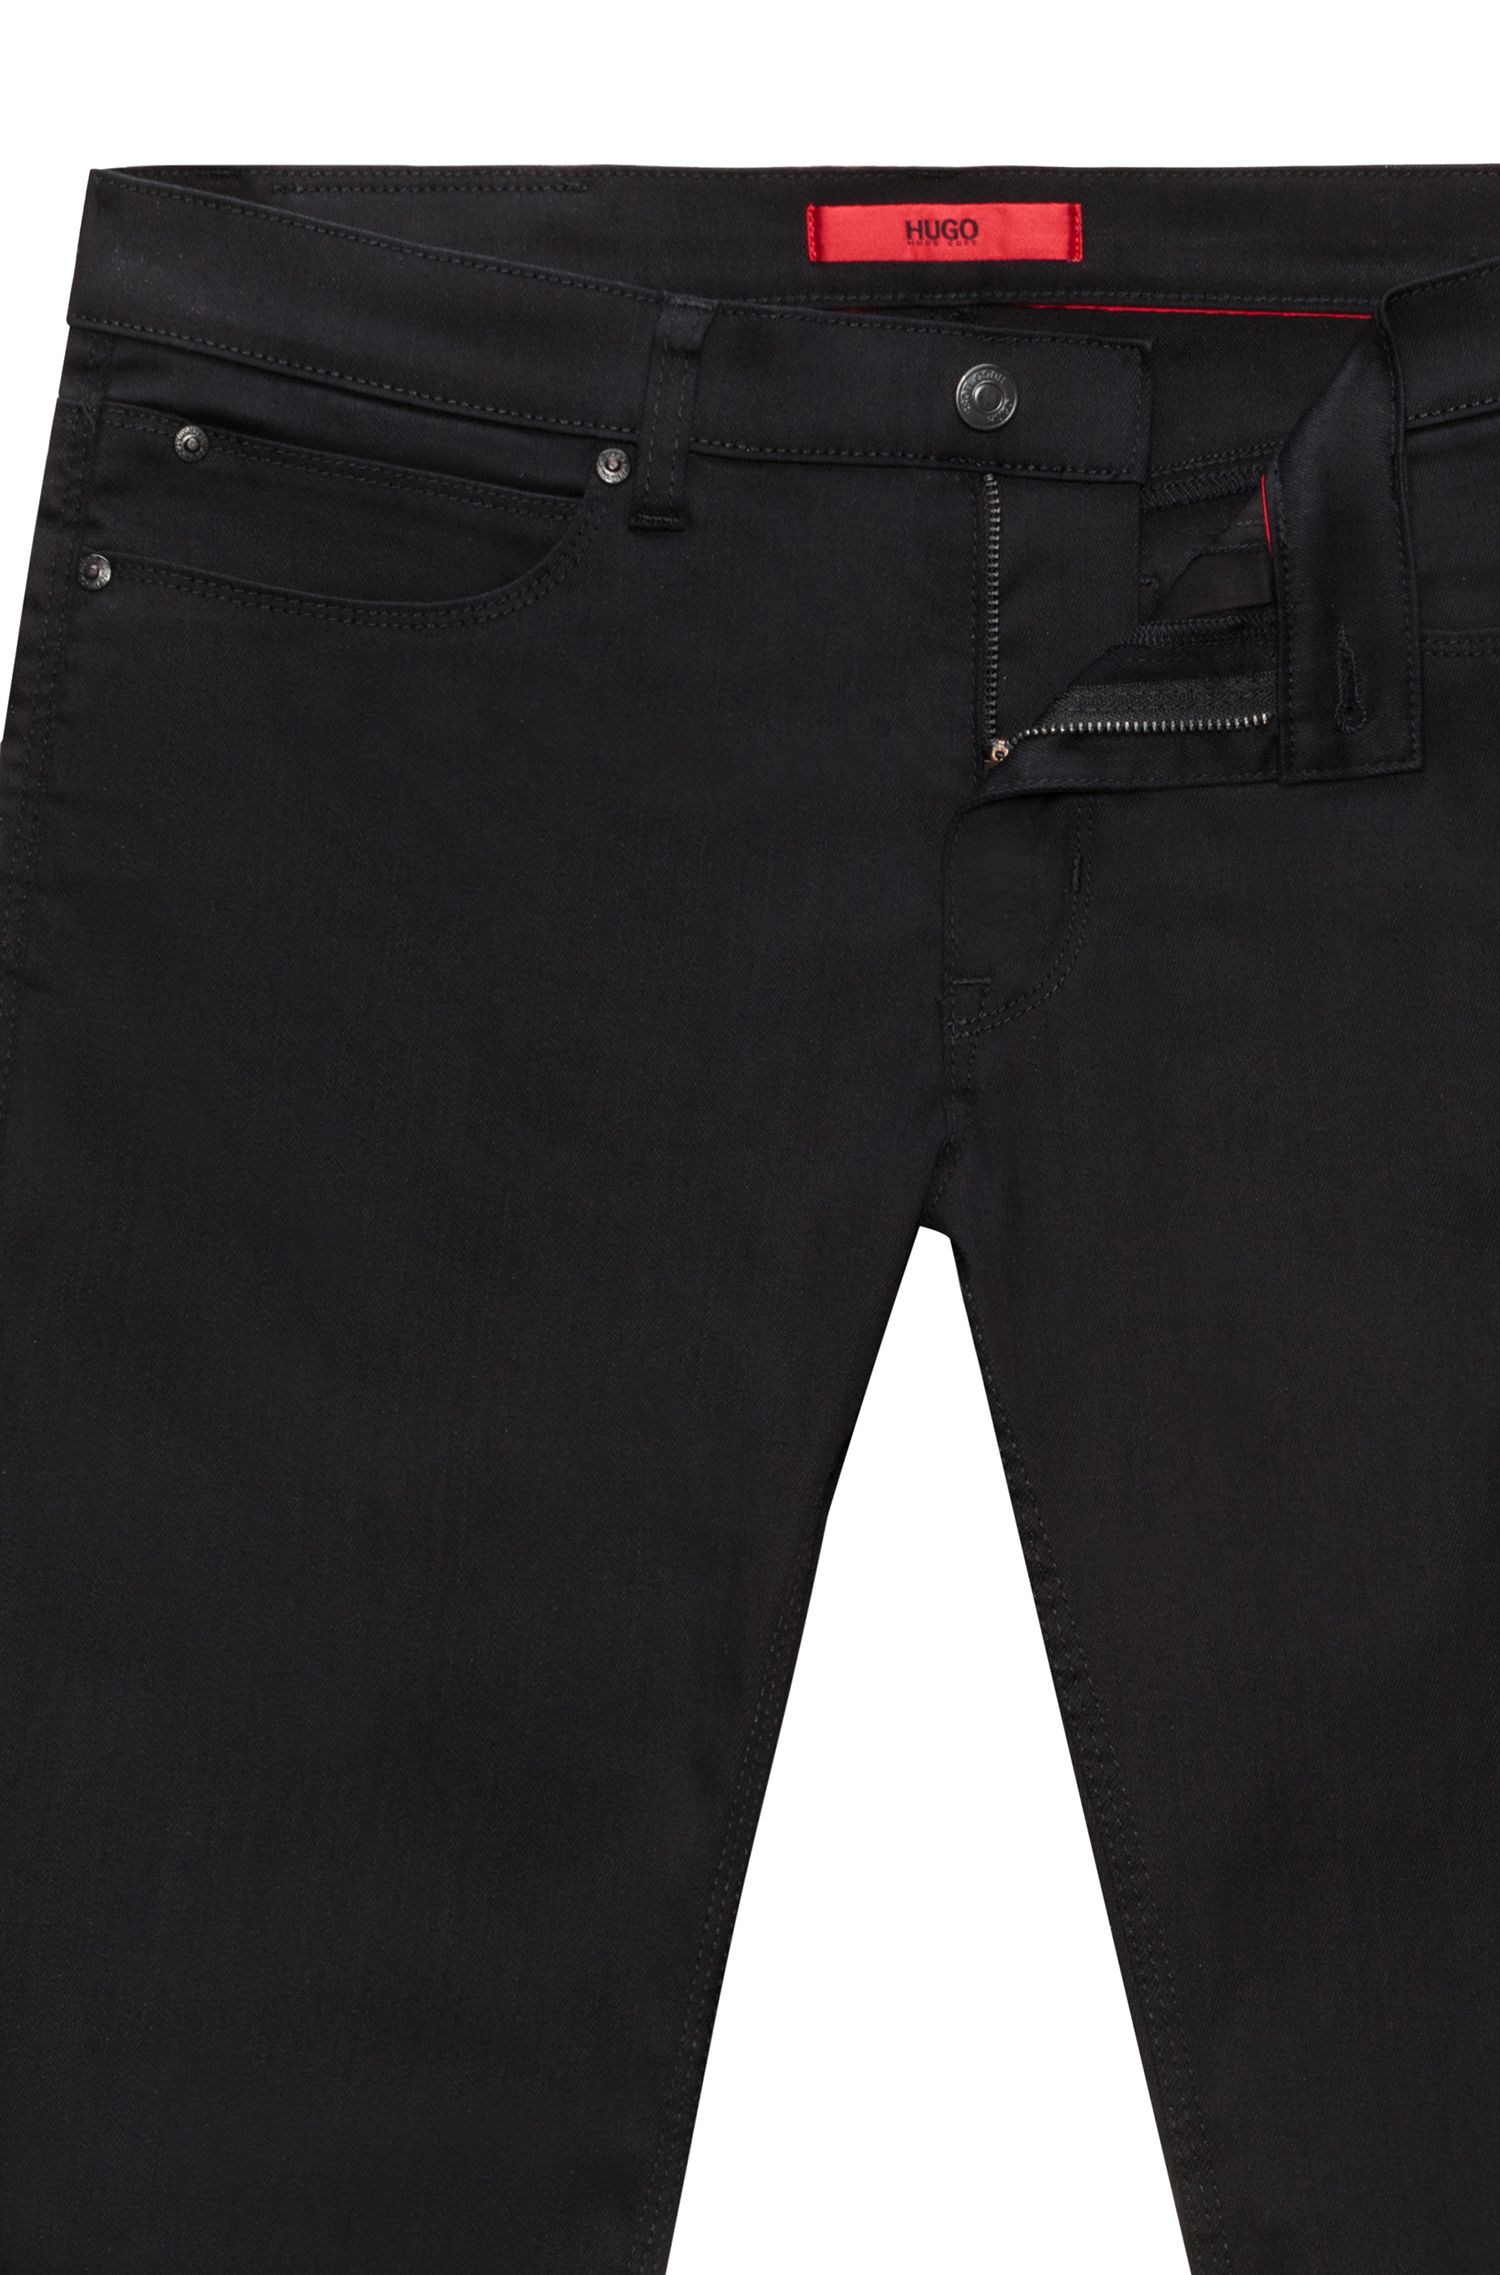 Slim-fit jeans in stay-black denim by HUGO Man, Black